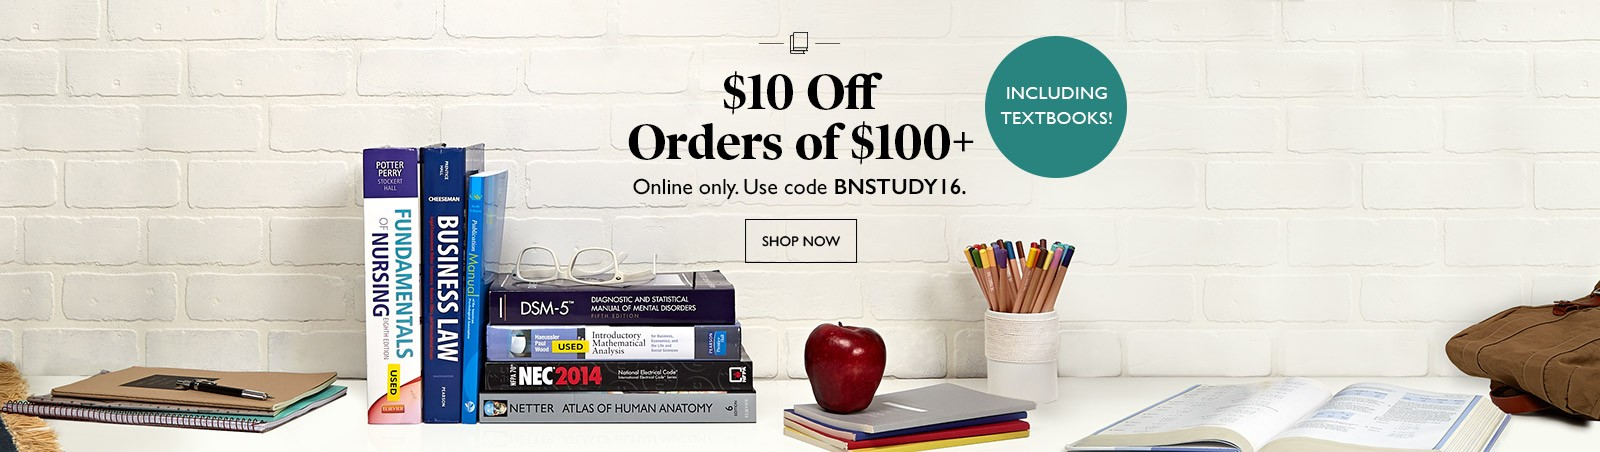 Bargain - 10% OFF - Orders of $100+ @ Barnes and Noble